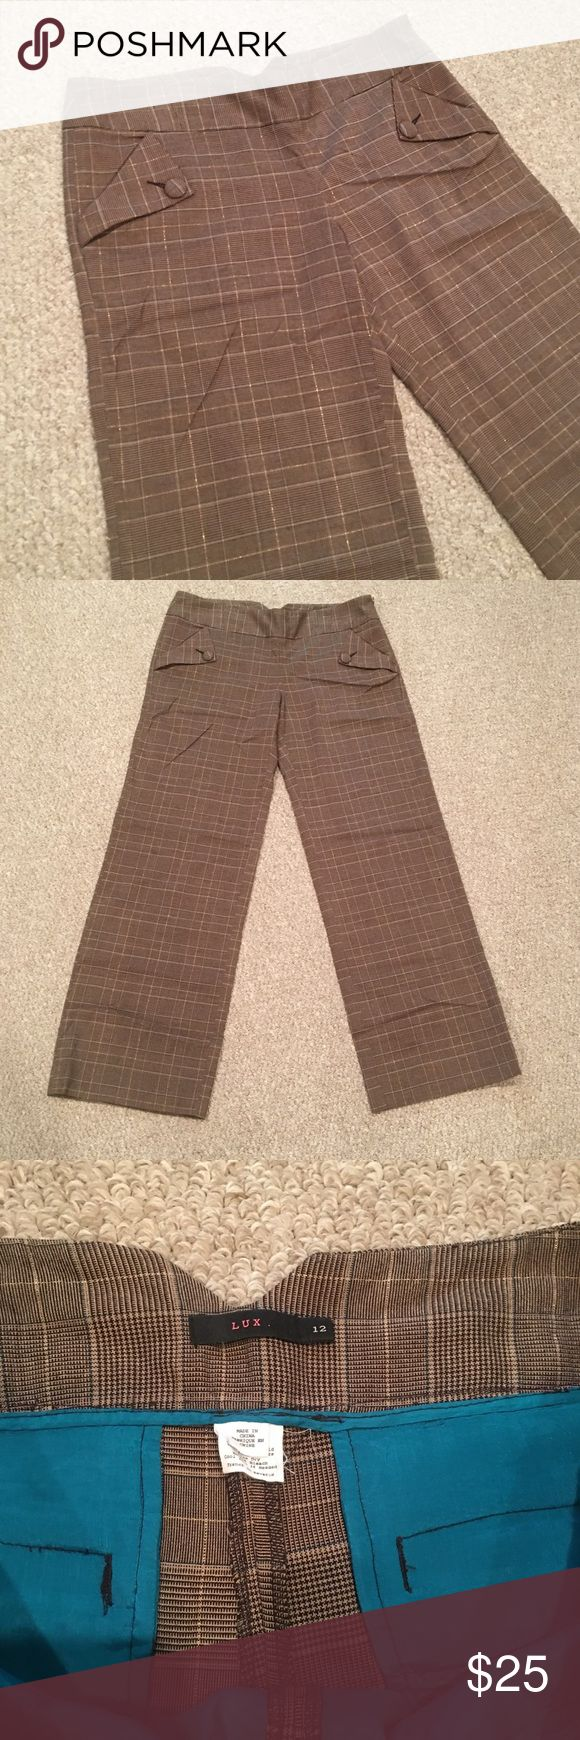 LUX Brand (Urban Outfitters) Wide Leg Trousers Awesome Wide Leg Trousers from Urban Outfitters size 12. Urban Outfitters Pants Trousers